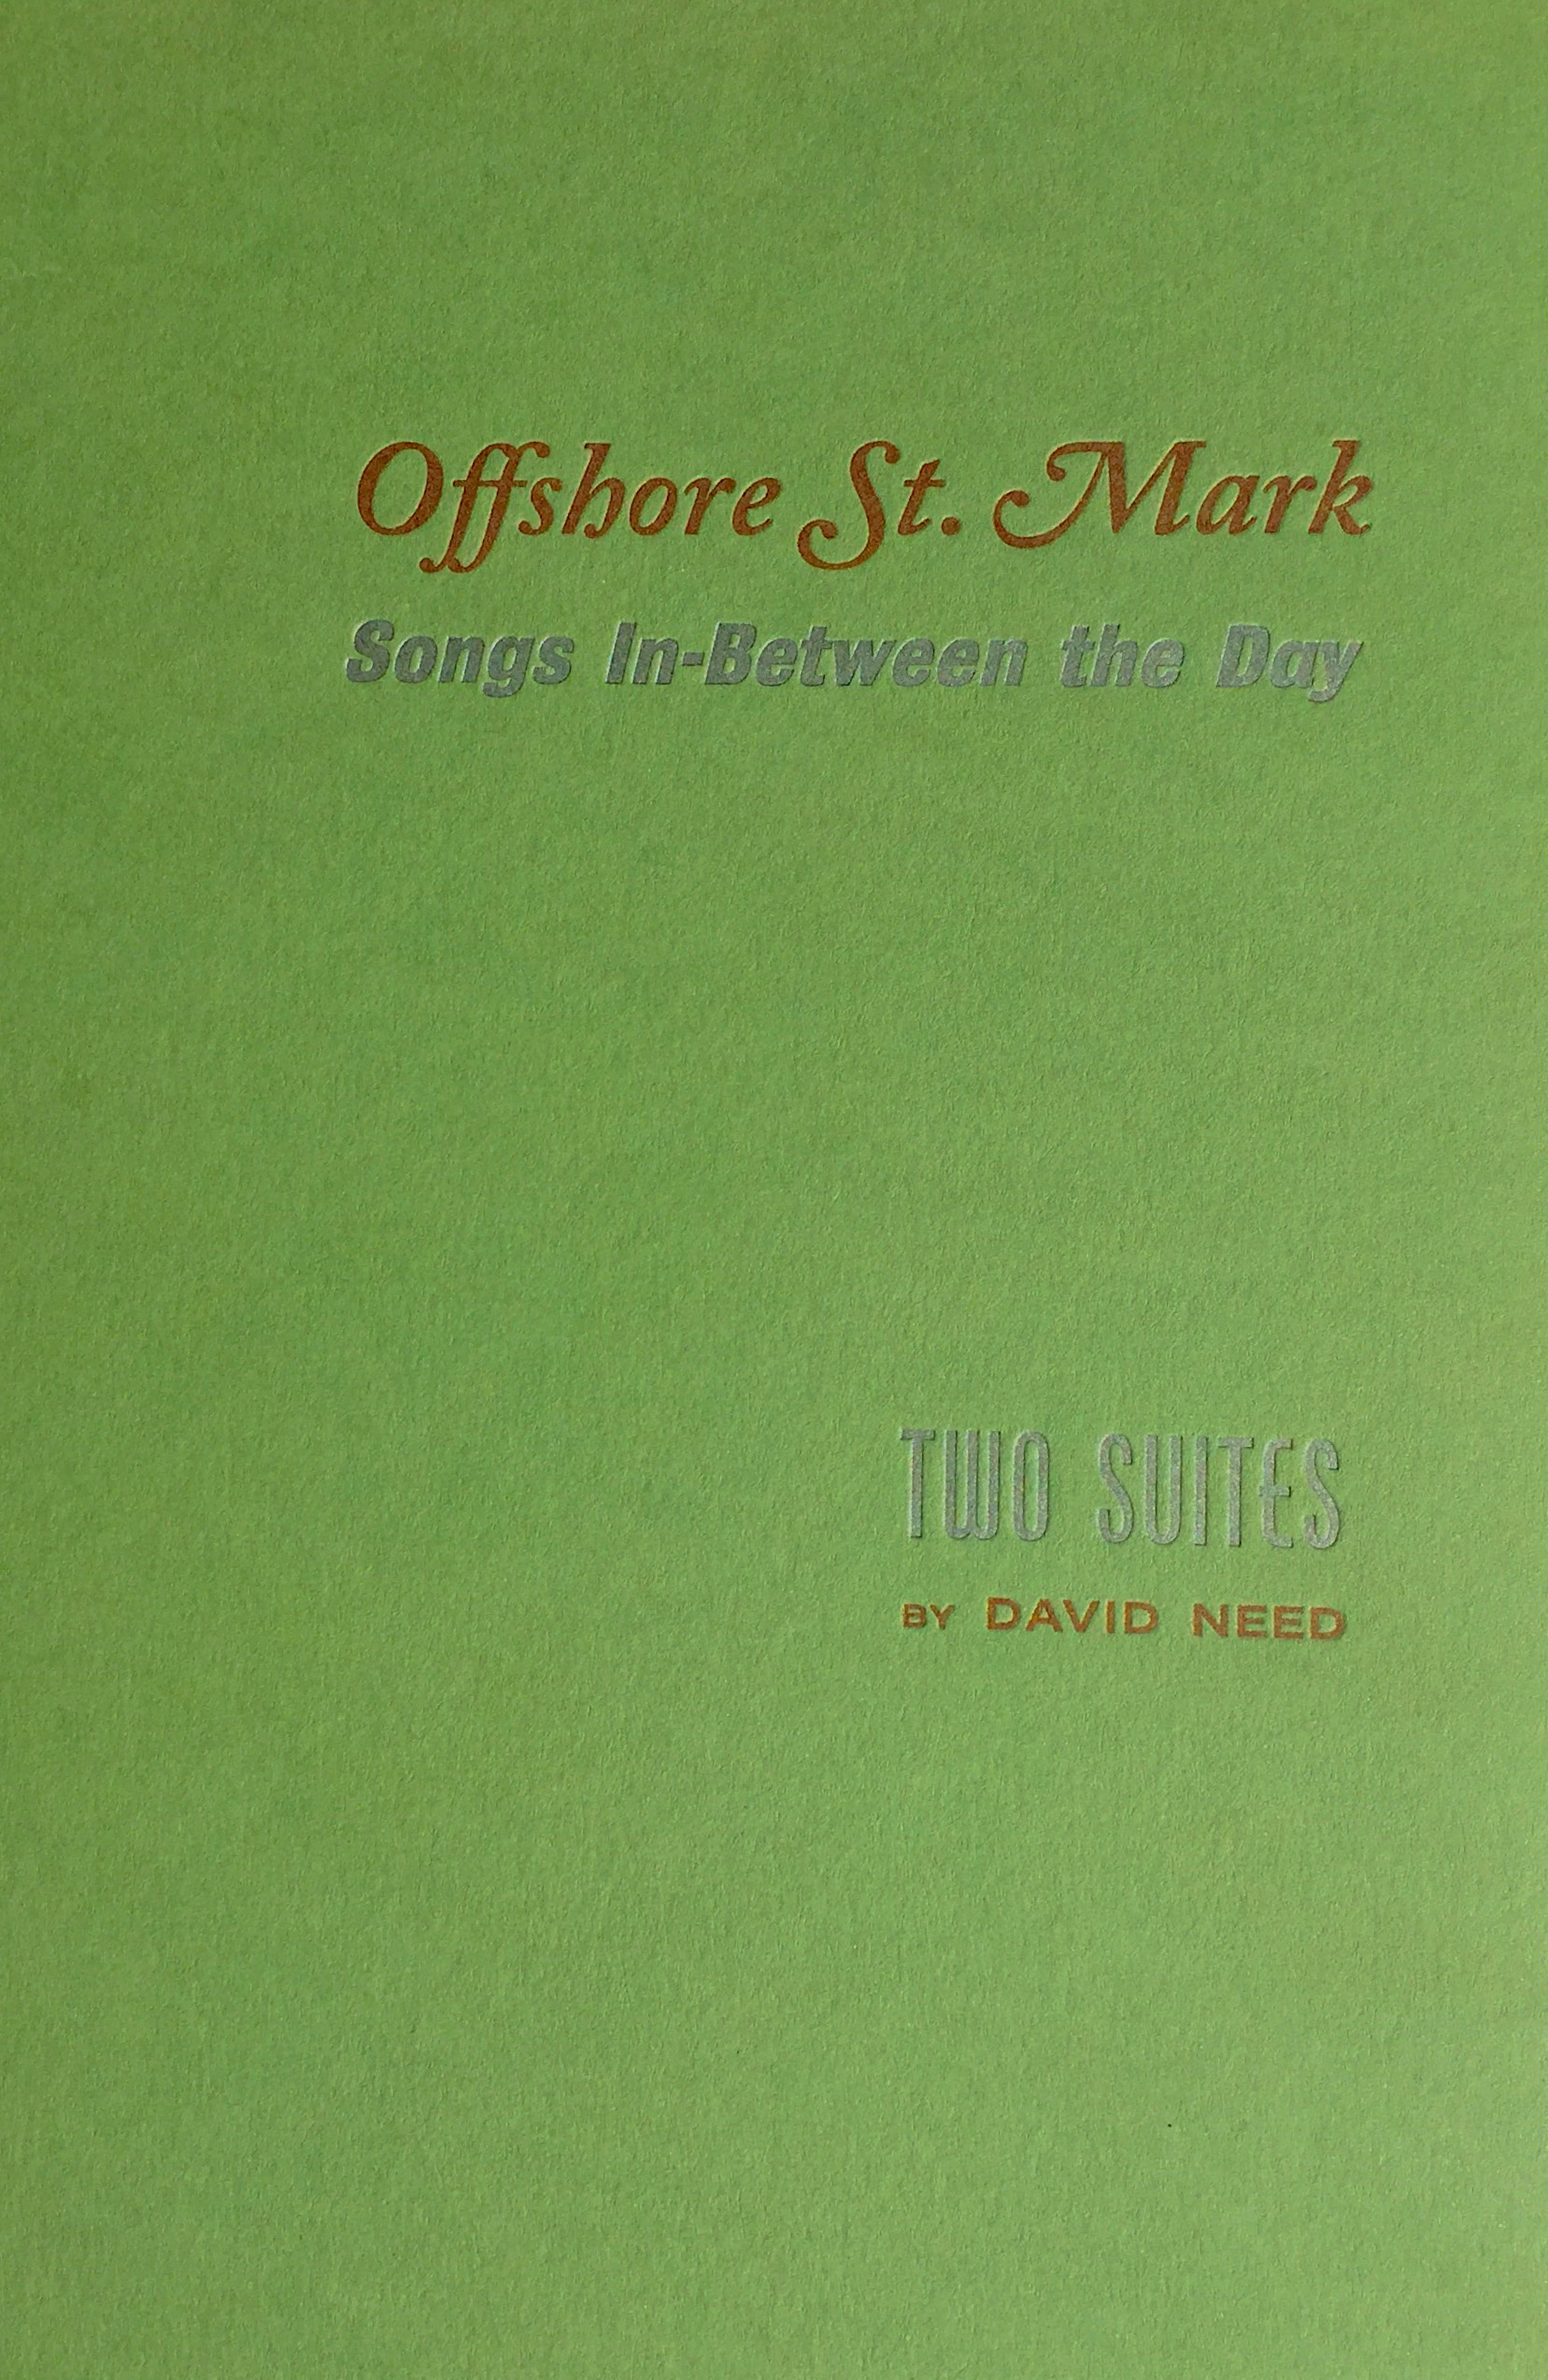 Songs In-Between the Day / Offshore St. Mark